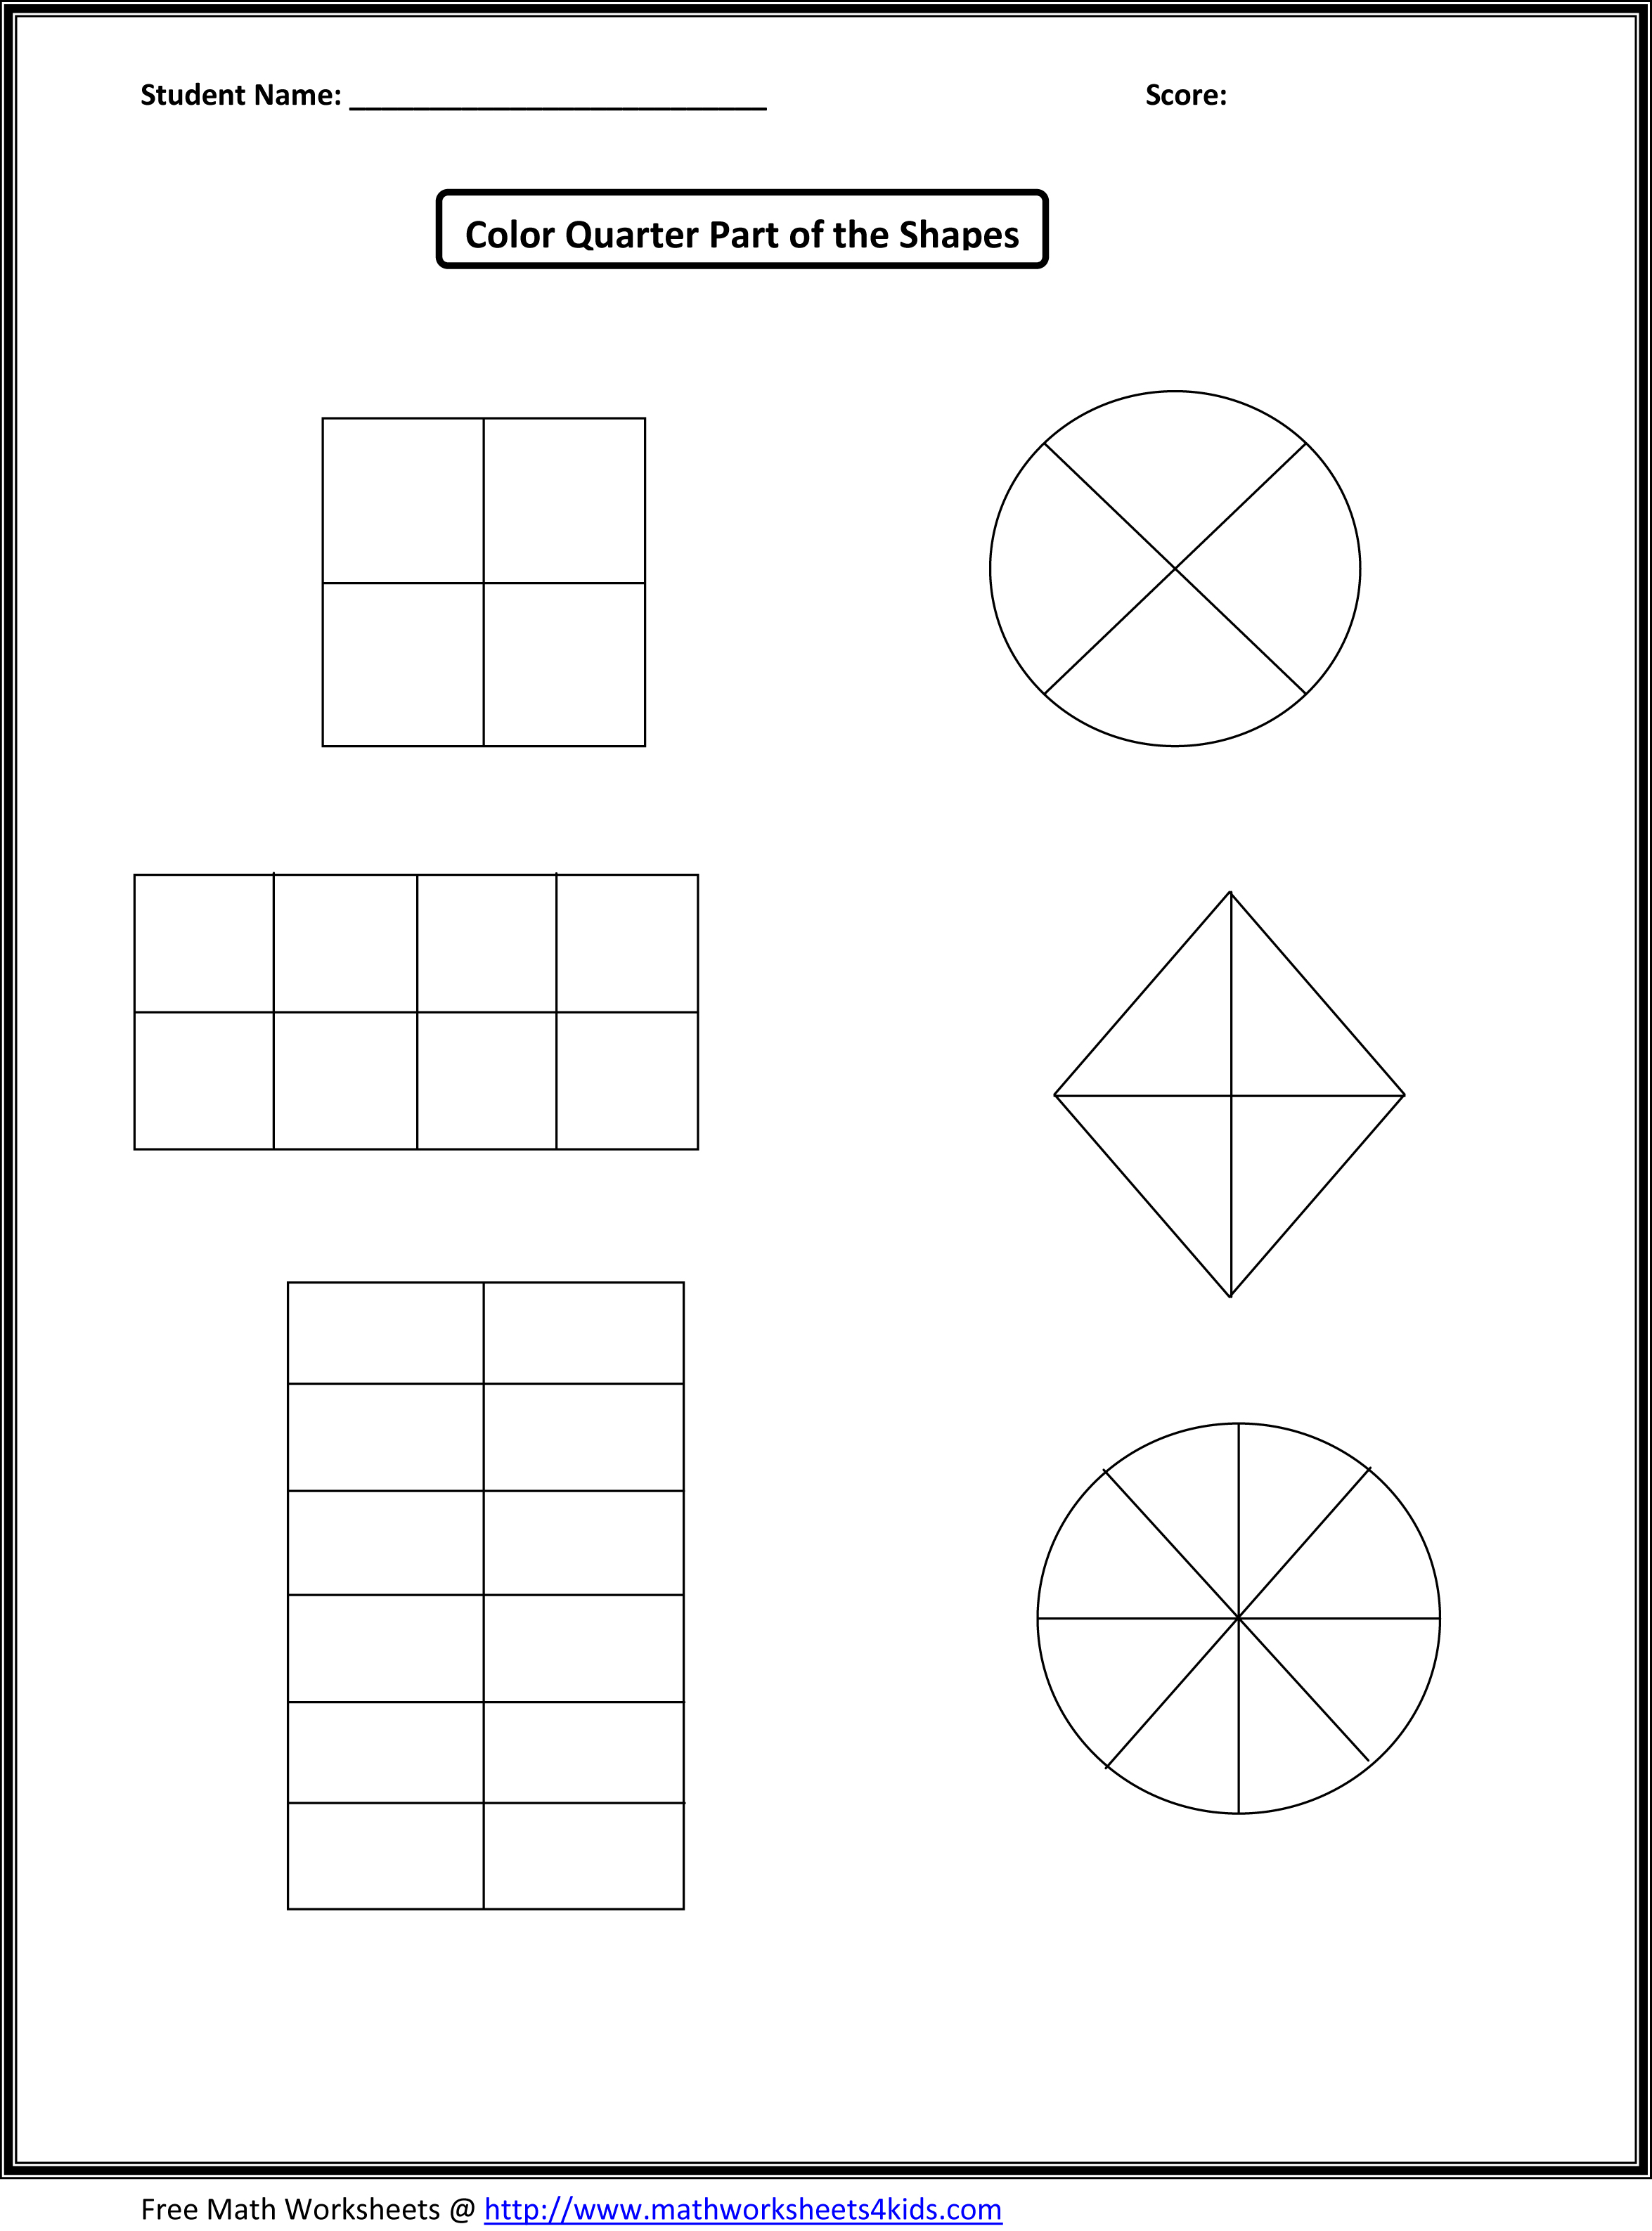 Worksheet 10541492 Shaded Fraction Worksheets Fraction FREE – Free Fractions Worksheets